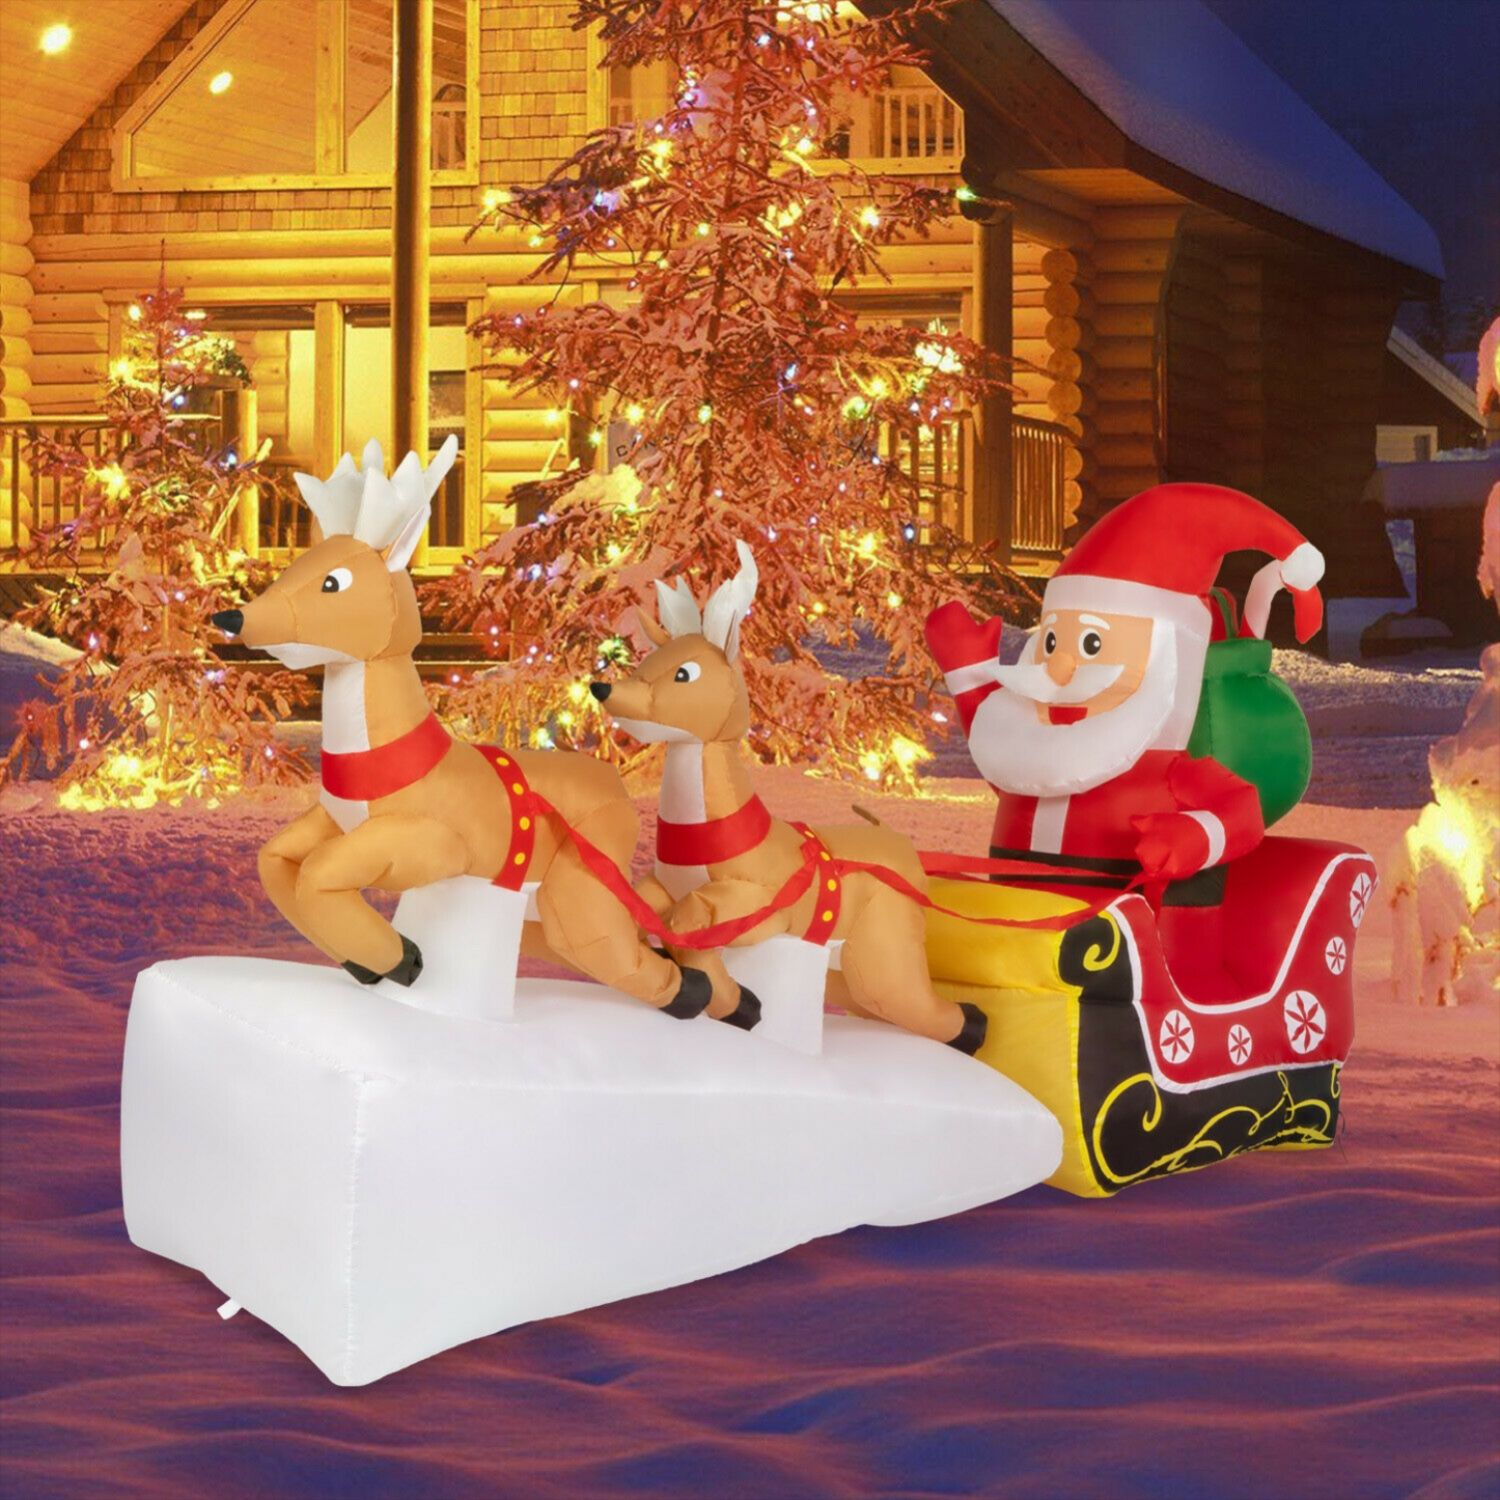 20+ Flying Santa And Reindeer Outdoor Decoration   MAGZHOUSE